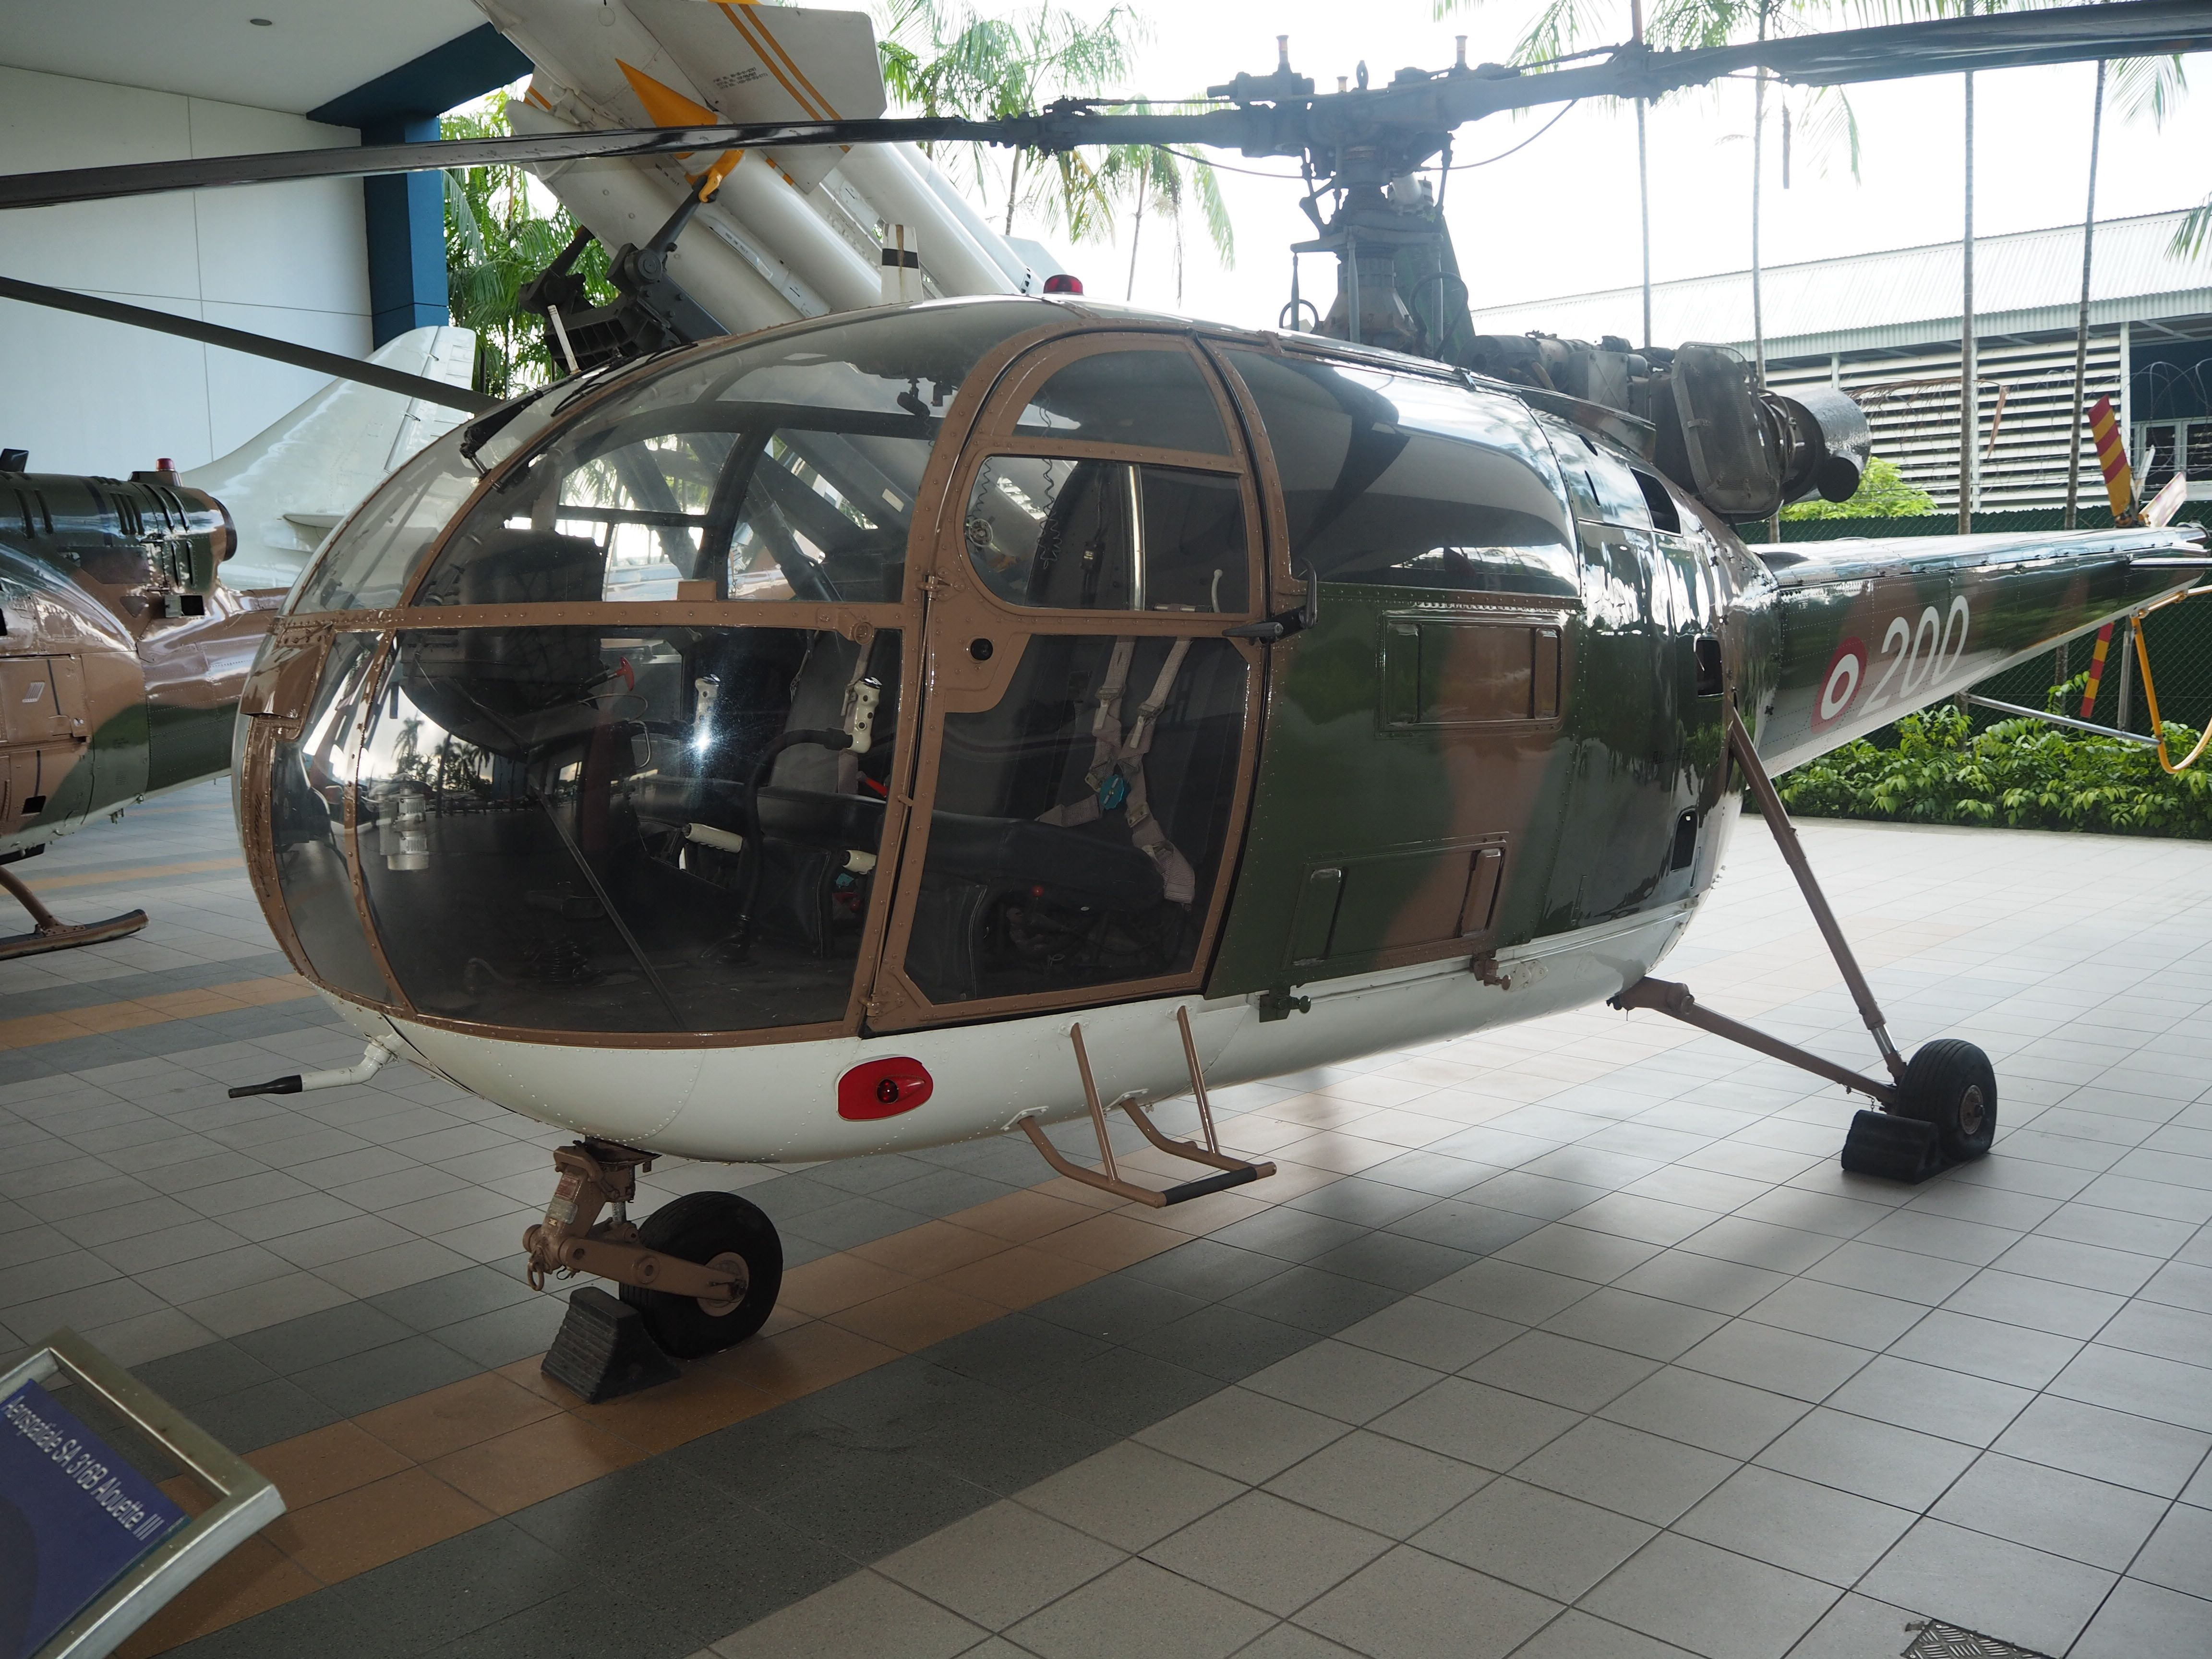 Alouette III Helicopter seen in the Republic of Singapore